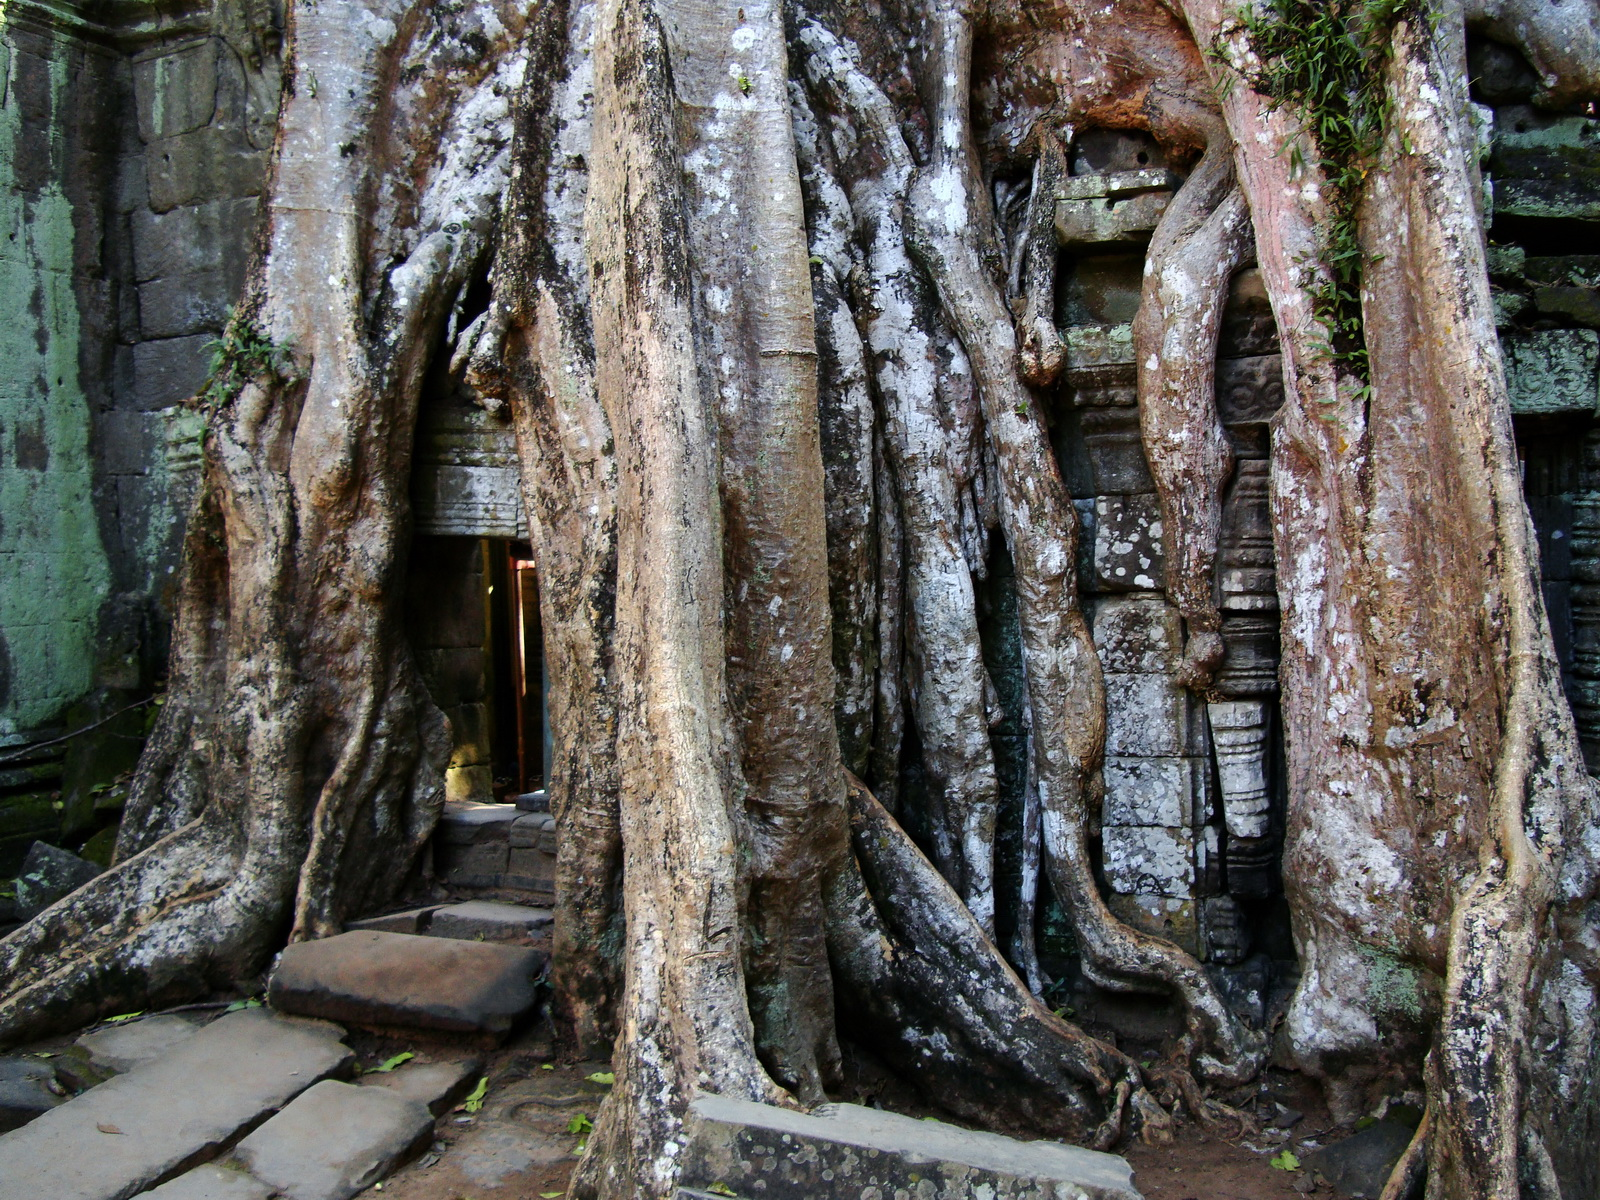 Ta Prohm Temple Tomb Raider giant iconic trees dwaf the gopura 02